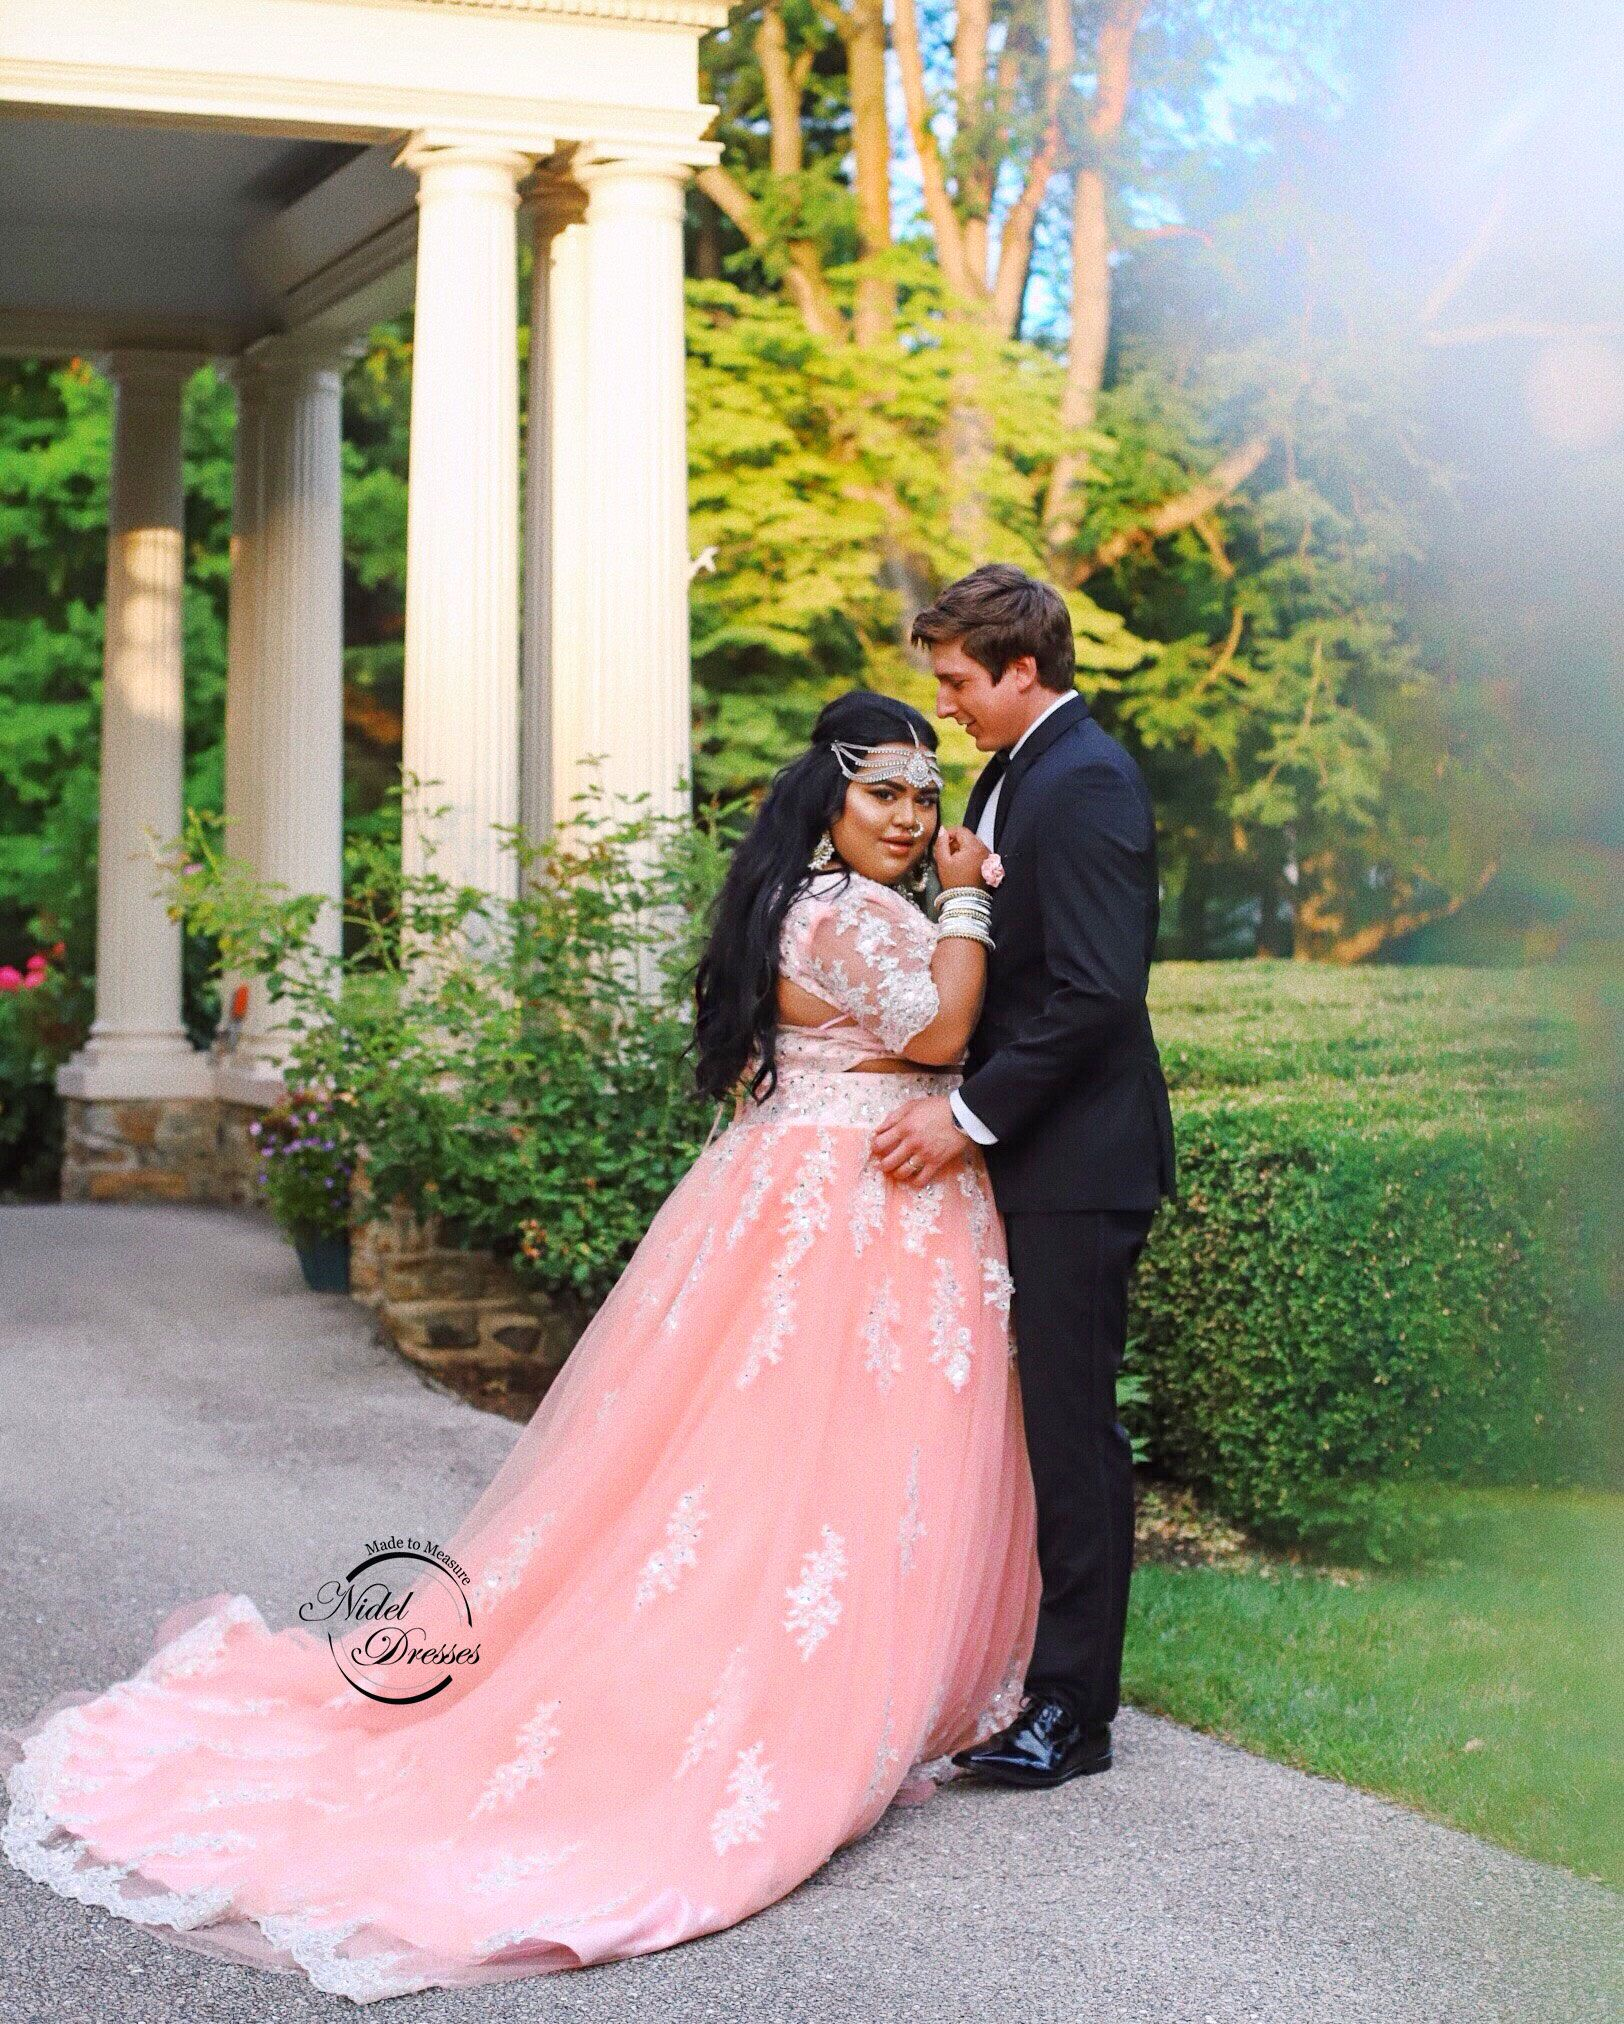 3267983b117 Nabela Noor in a beautiful pink custom wedding dress  lehenga. Order yours  today! Exclusively at Nidel Dresses.